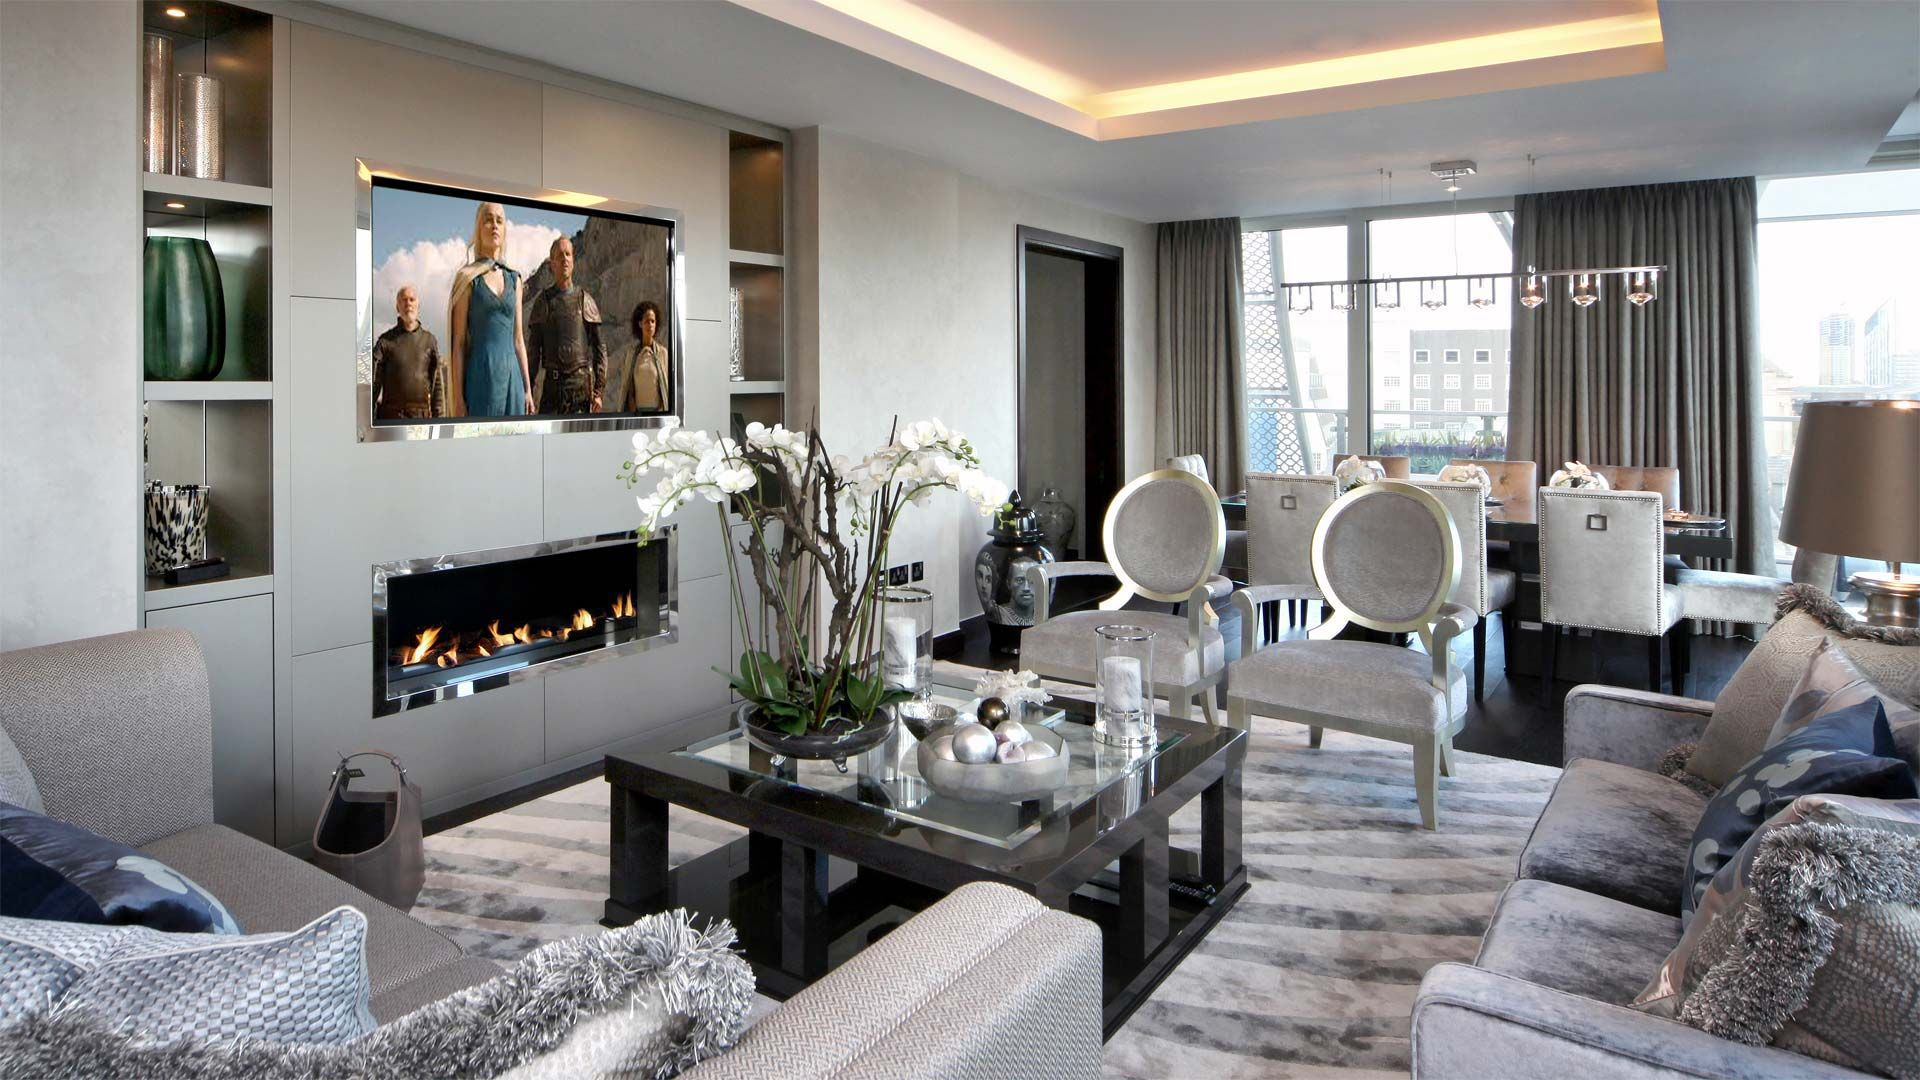 Ordinaire Westminster Penthouse, London Project, Interior Design Portfolio, Hill  House Interiors Are A London Based Interior Design Company With A Showroom  In Elystan ...